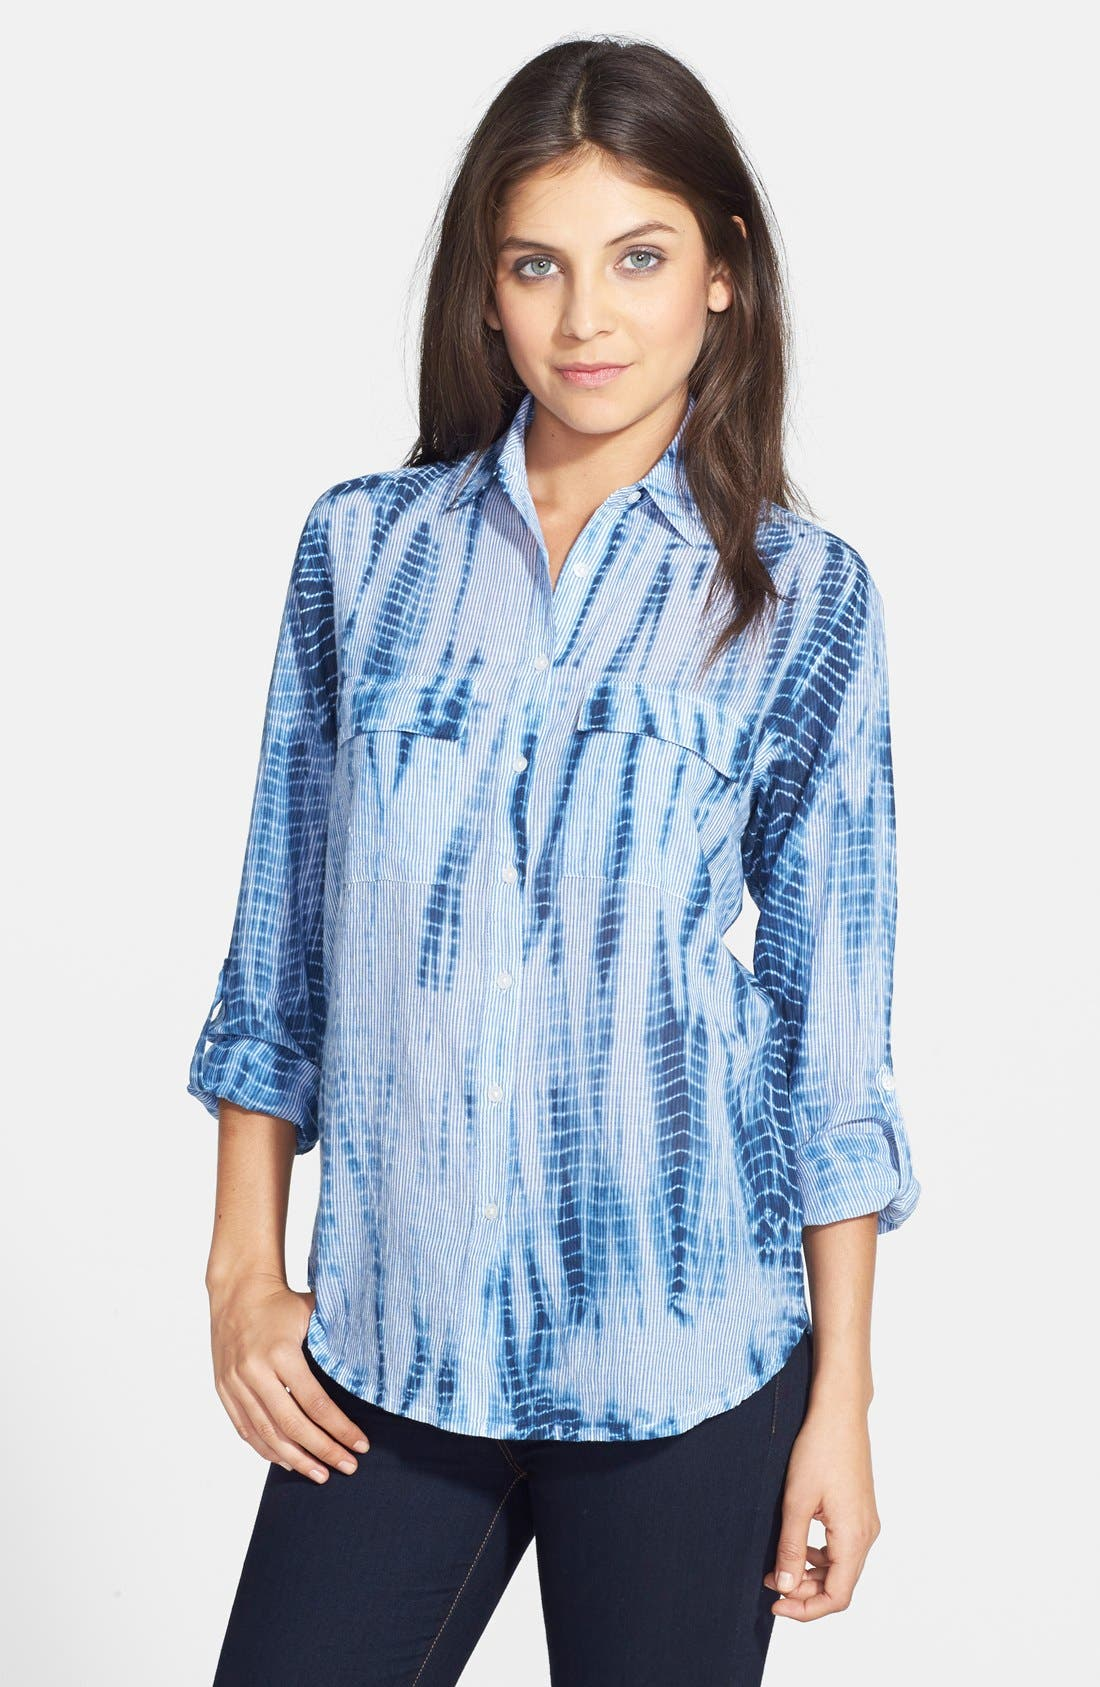 Alternate Image 1 Selected - Chaus Tie Dye Print Roll Sleeve Cotton Shirt